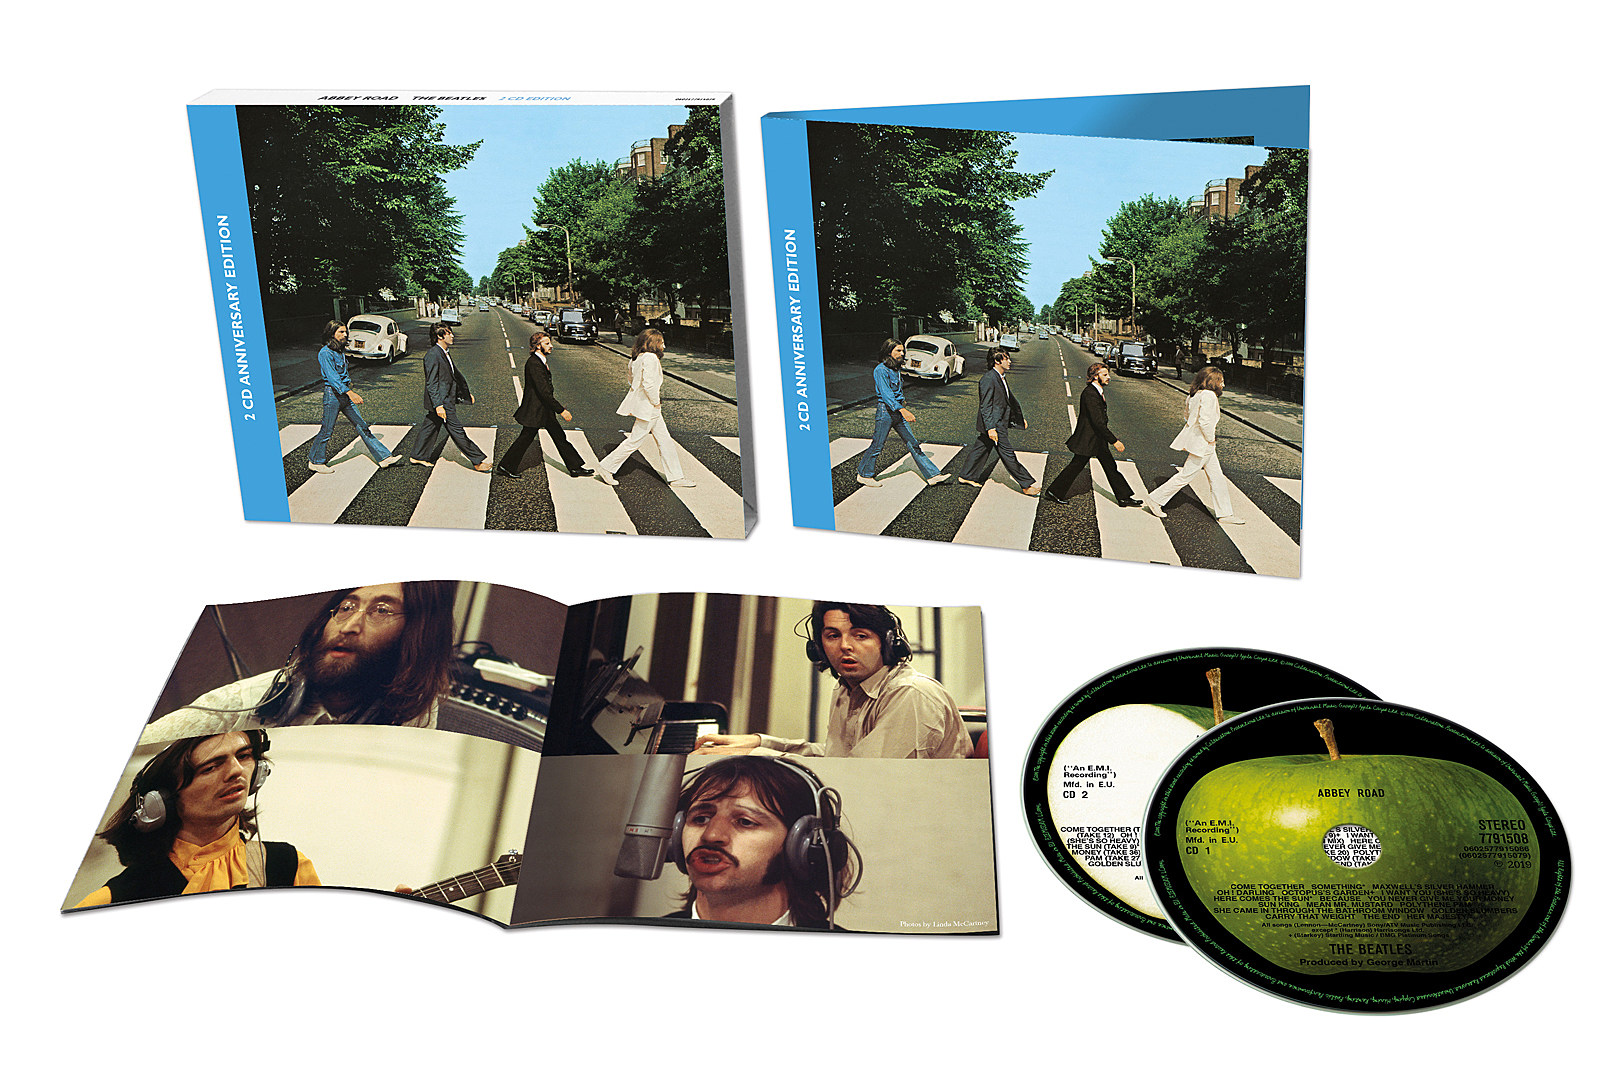 Here's What the Beatles' 'Abbey Road' Reissue Box Is Missing